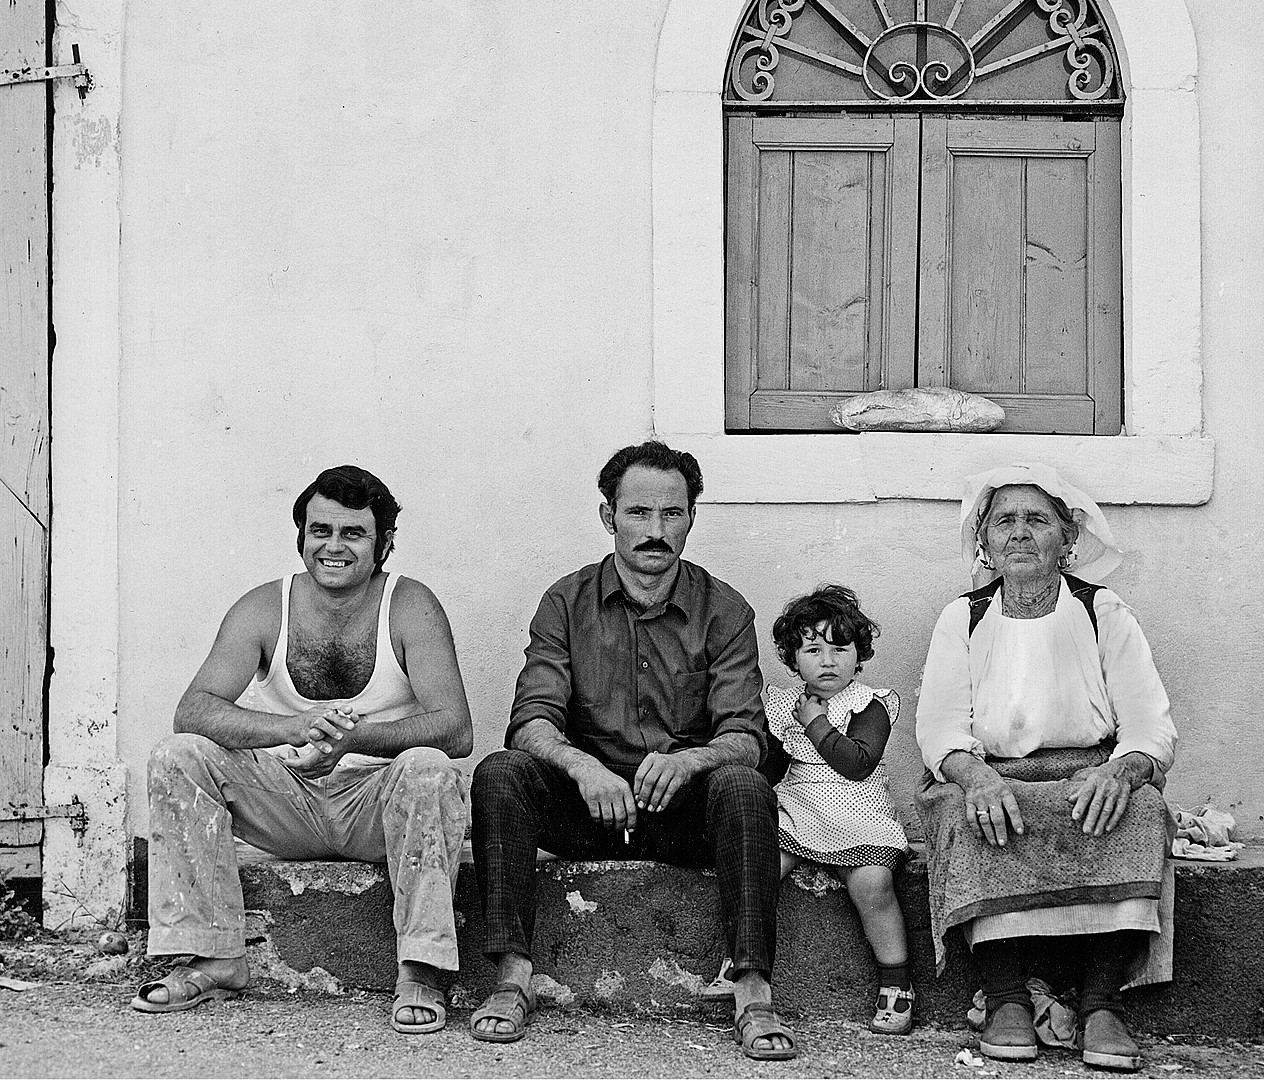 07 Corfu, Greece 1977